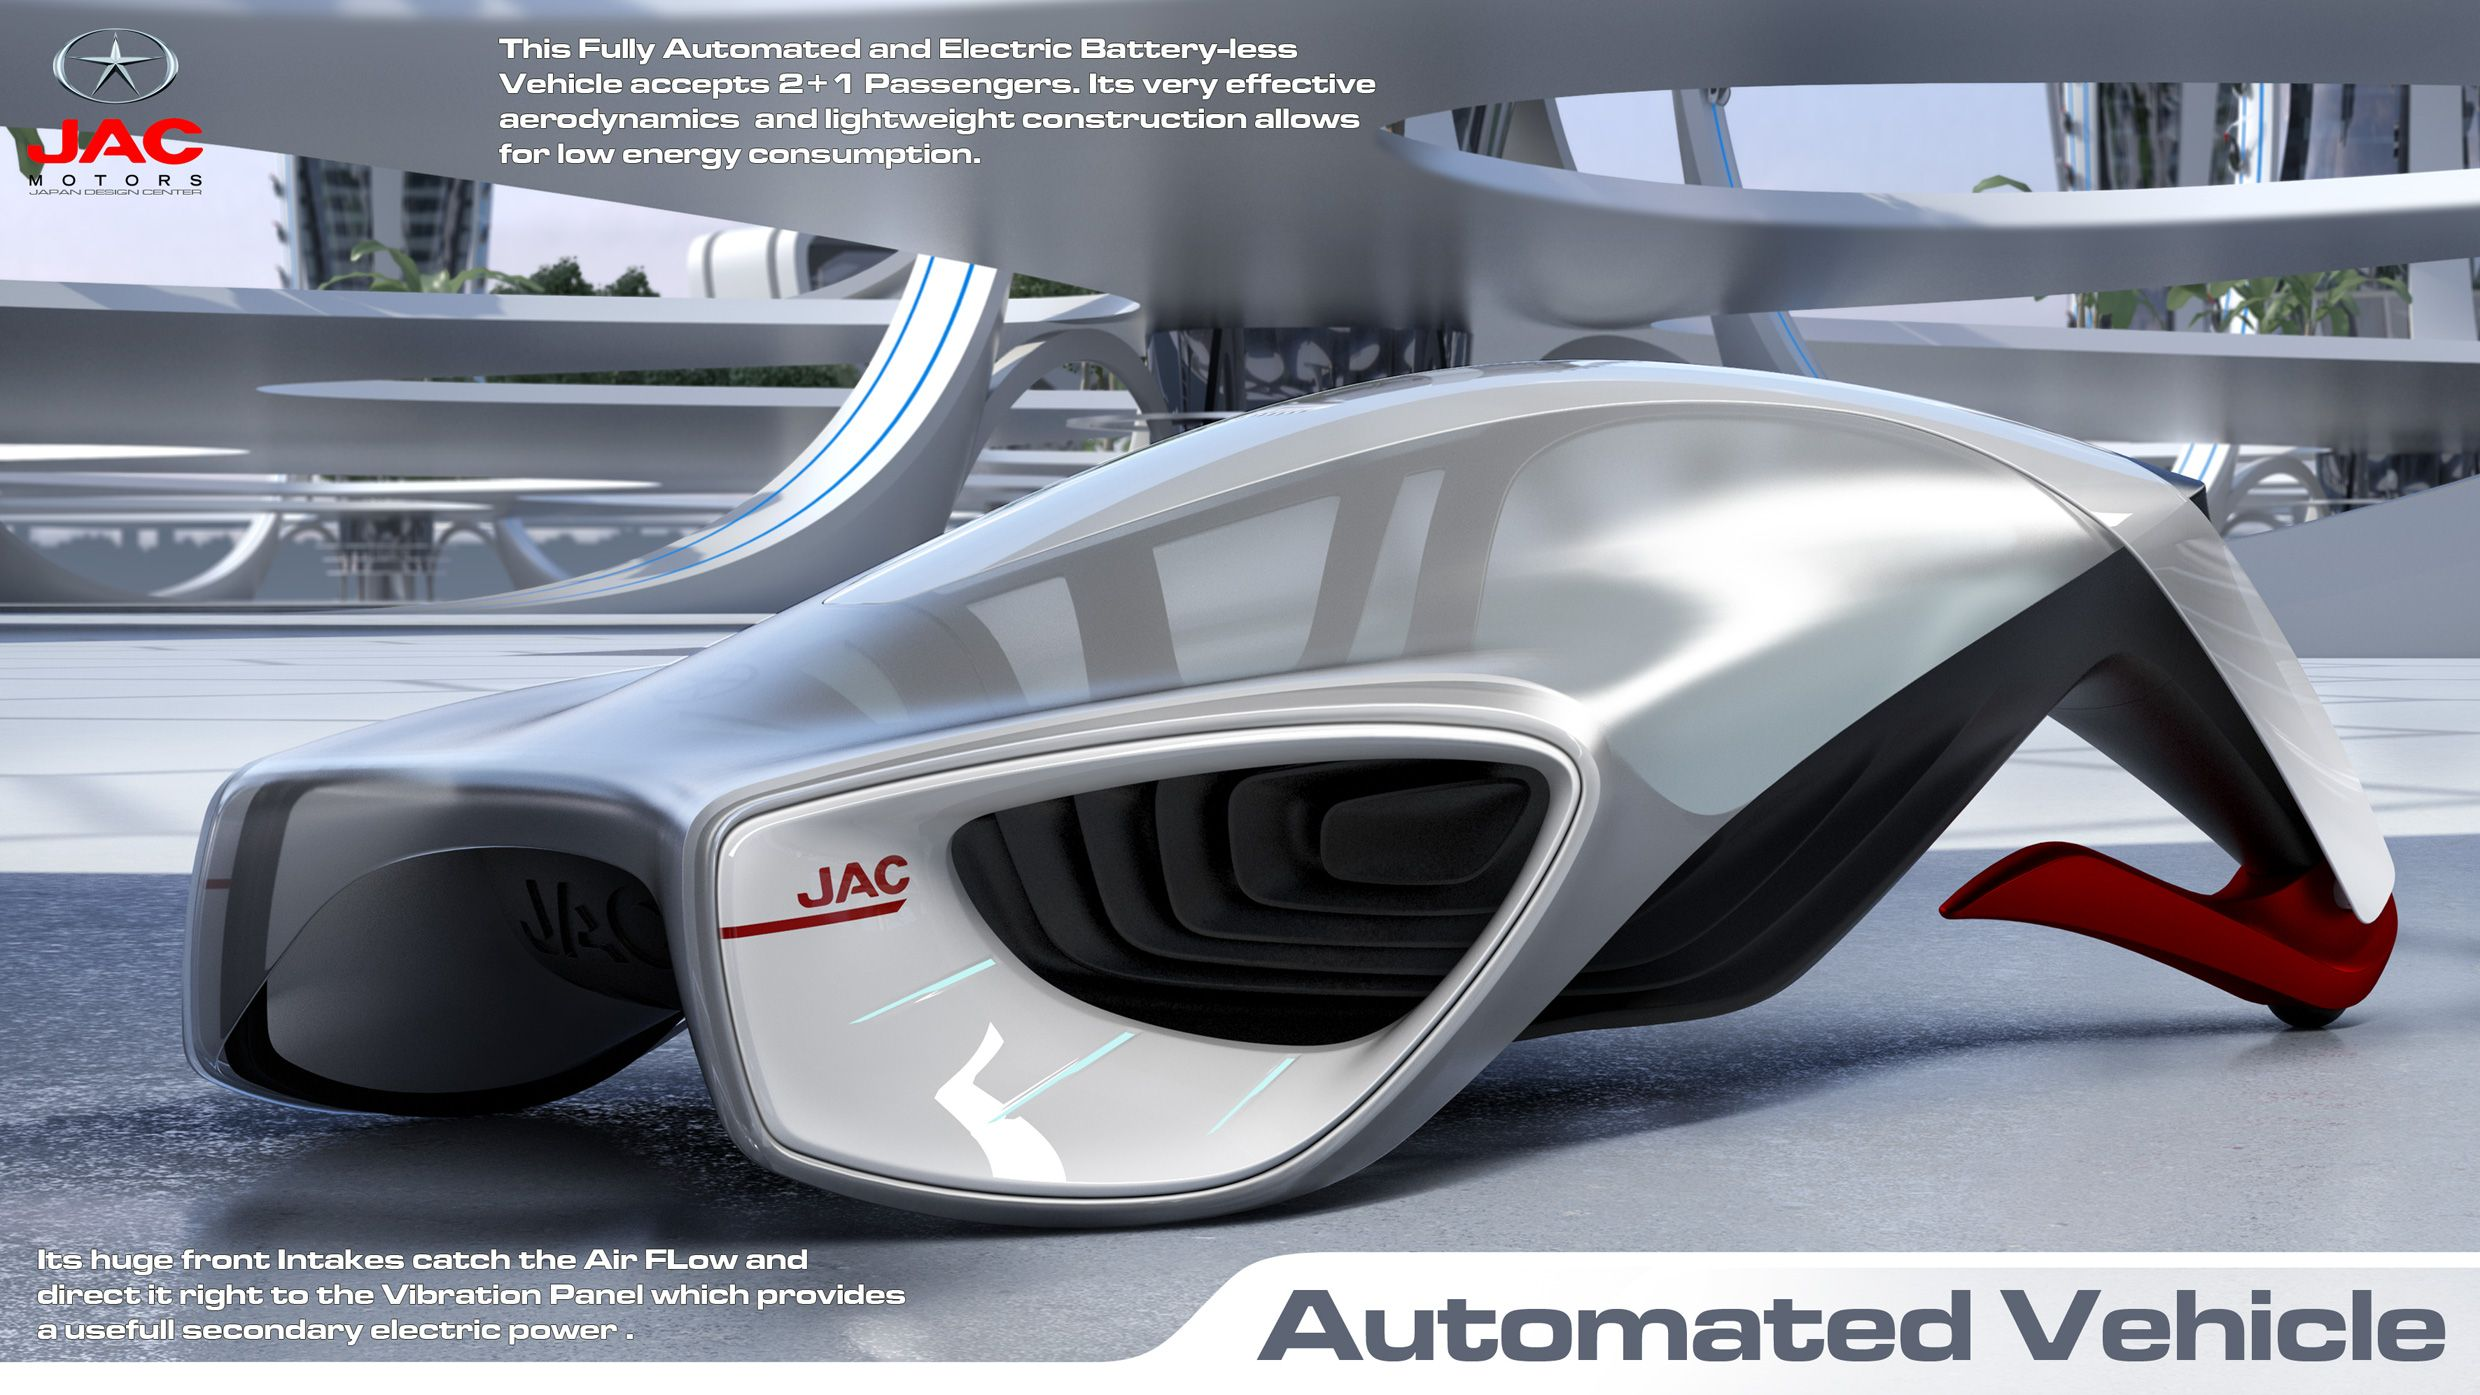 Car Designers Predict Biomimicry Will Be The Main Concern For Future Bmw I1 Is An Electric Singleseater Trikecar Concept By Designer Futuristic Jac Motors Rd Center Automobiles Pics